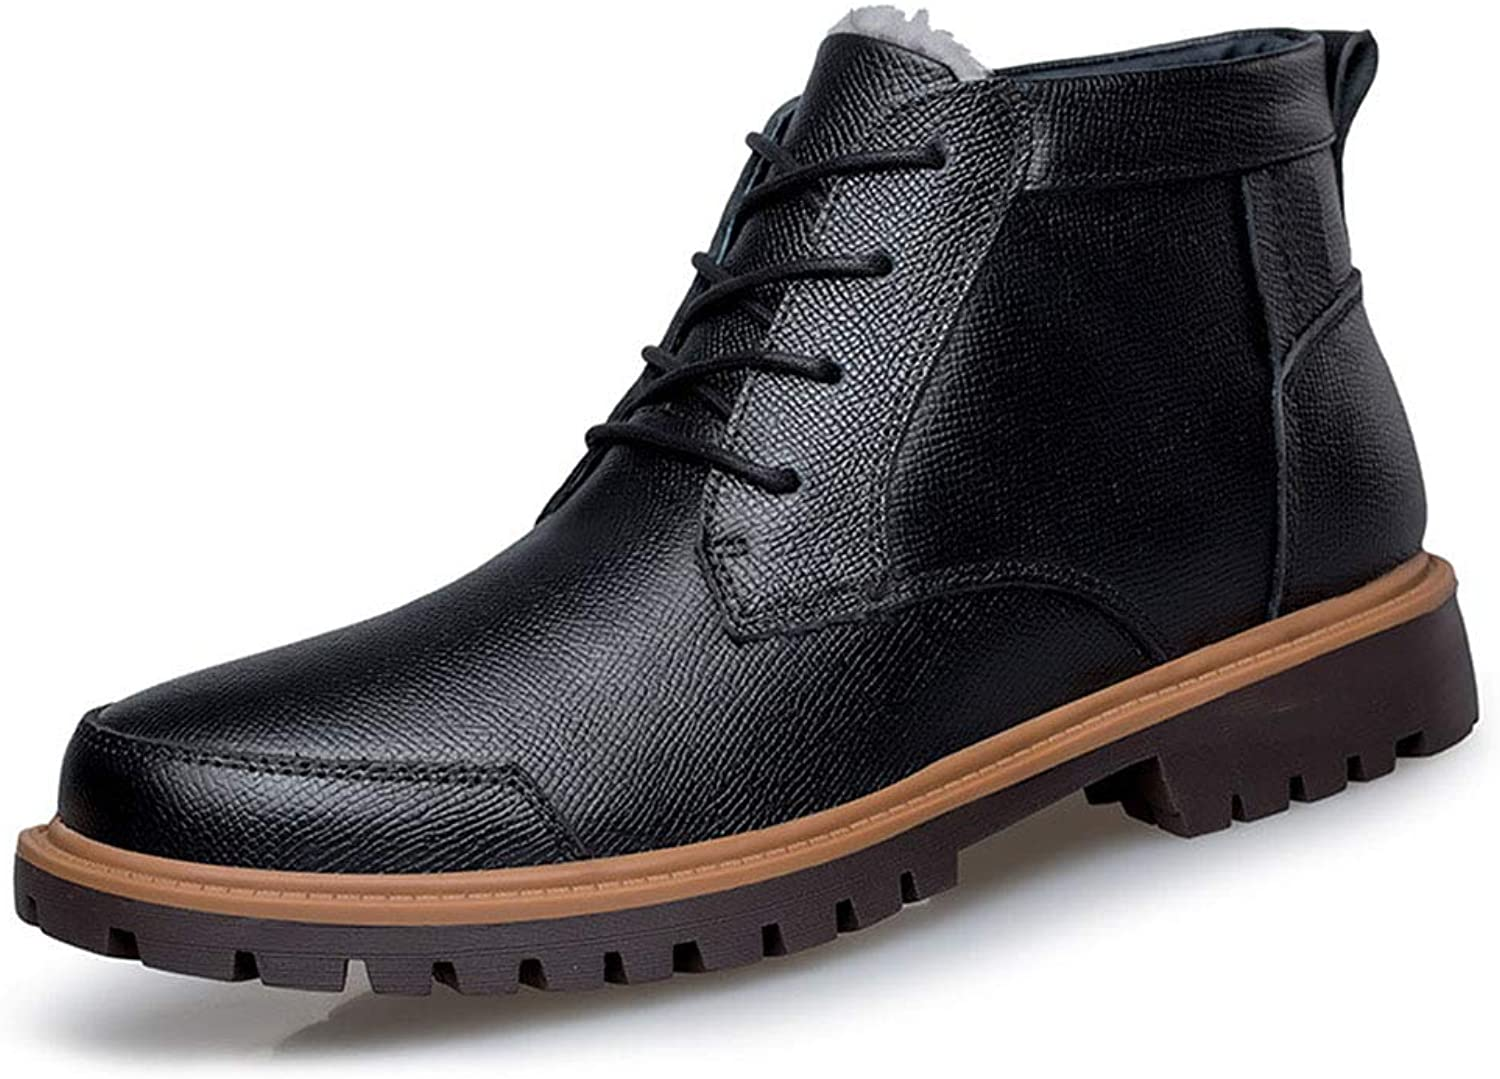 Men's Leather shoes Winter Business Leather Boots High-Top Plus Velvet Keep Warm Lace-Up shoes,A,39